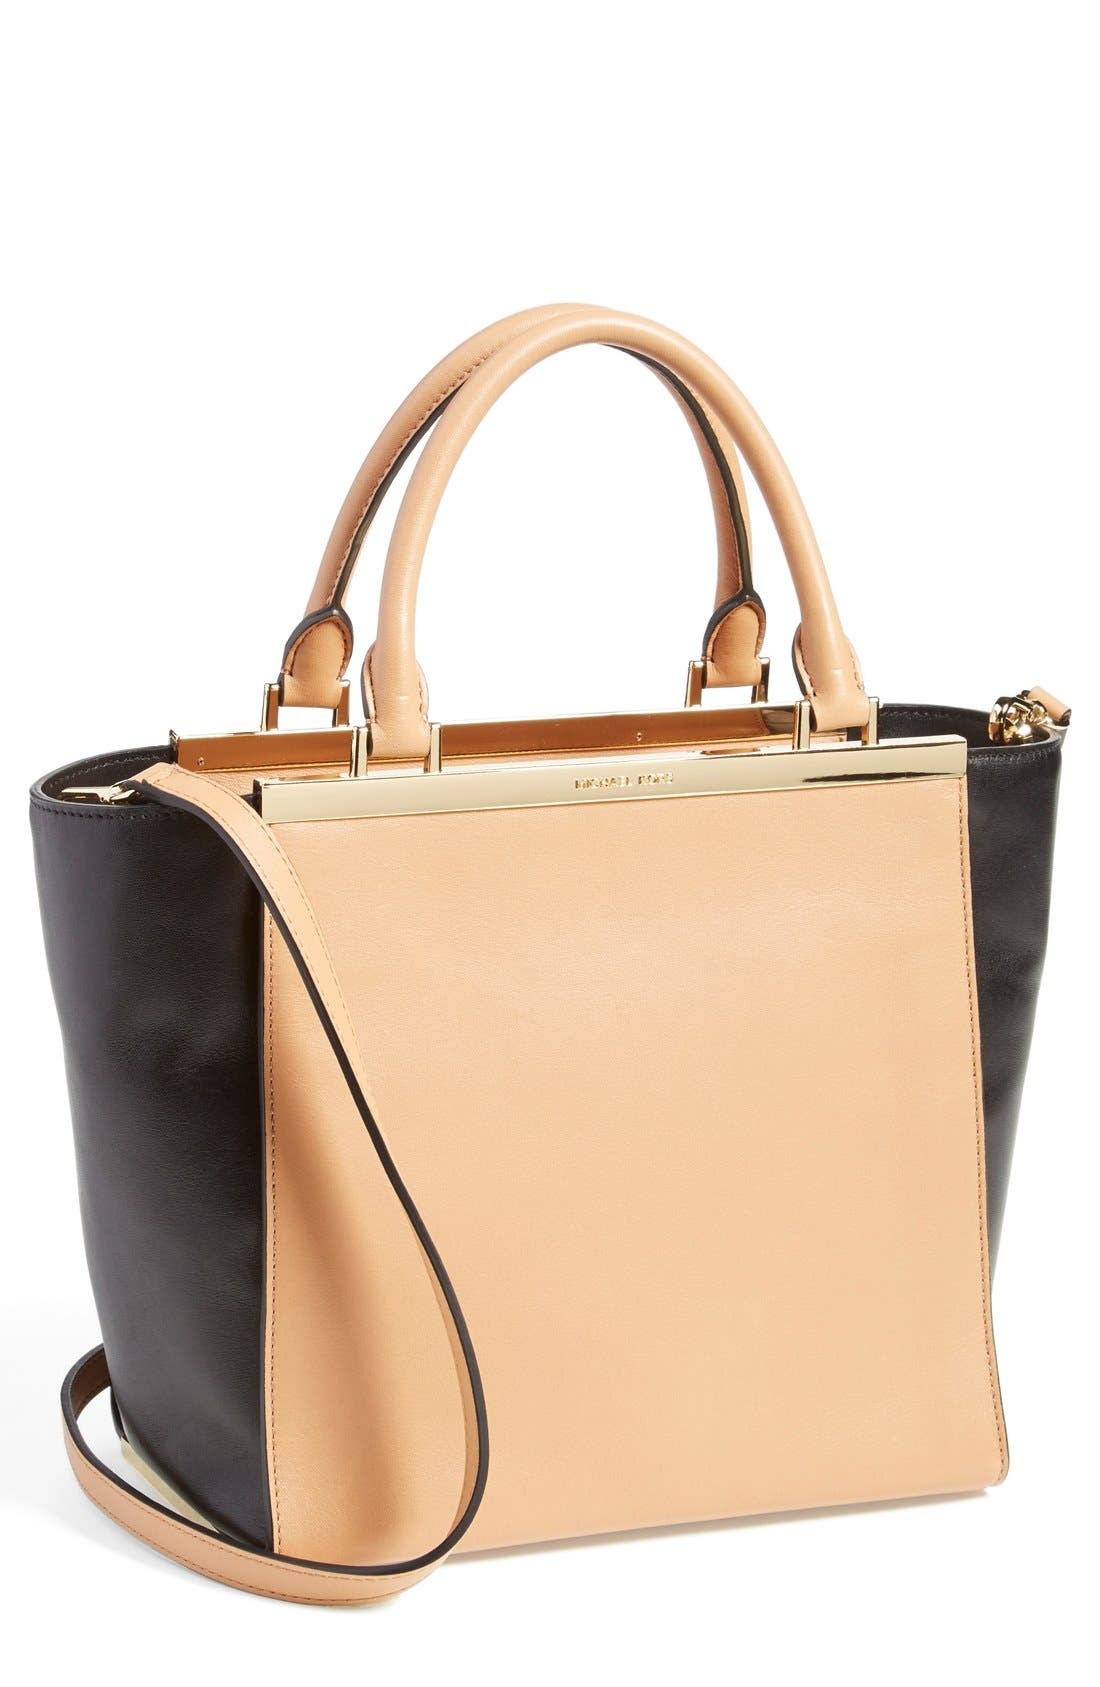 Alternate Image 1 Selected - MICHAEL Michael Kors 'Lana Medium' Leather Tote